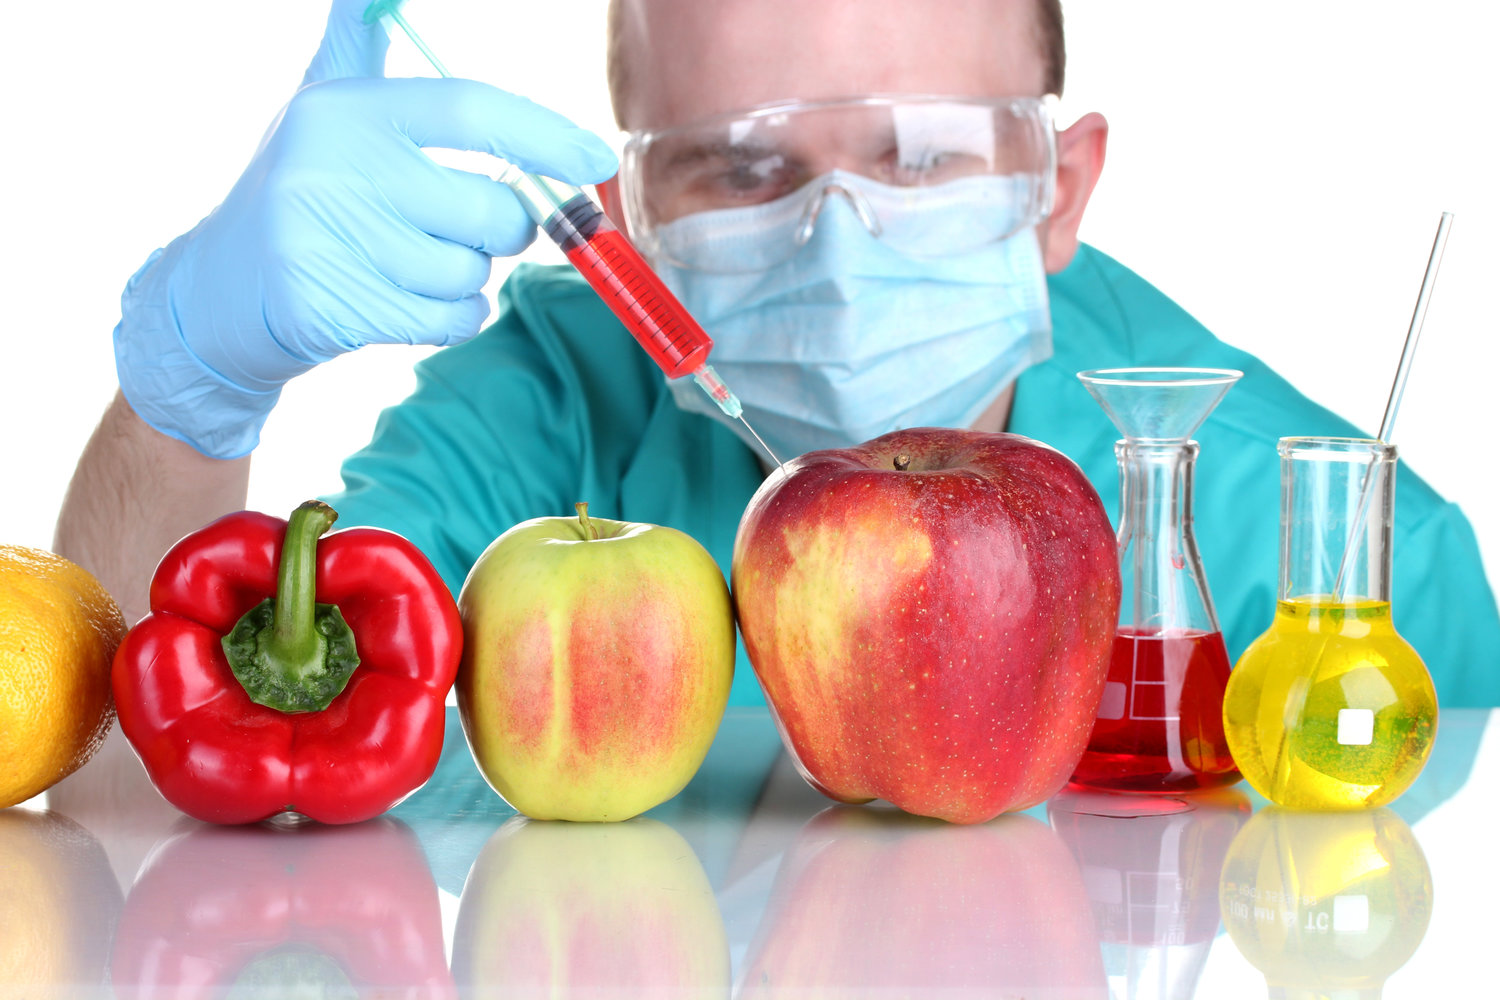 Foods Suppliers – Avoiding Inaccuracies